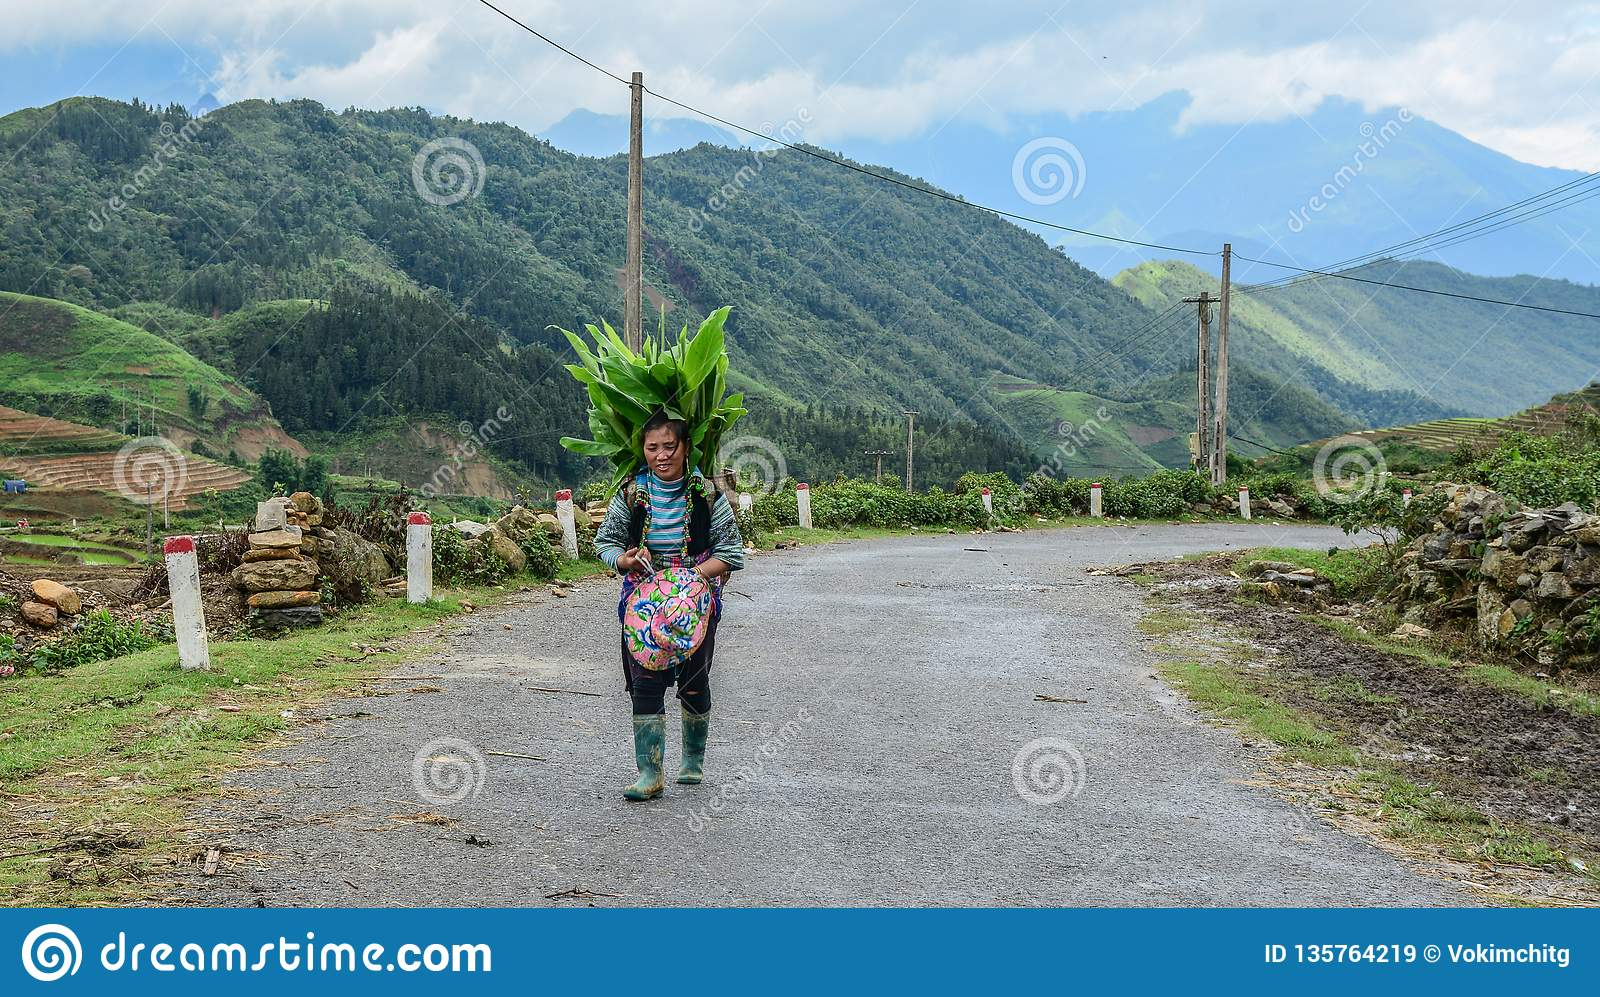 Hmong woman walking on mountain road